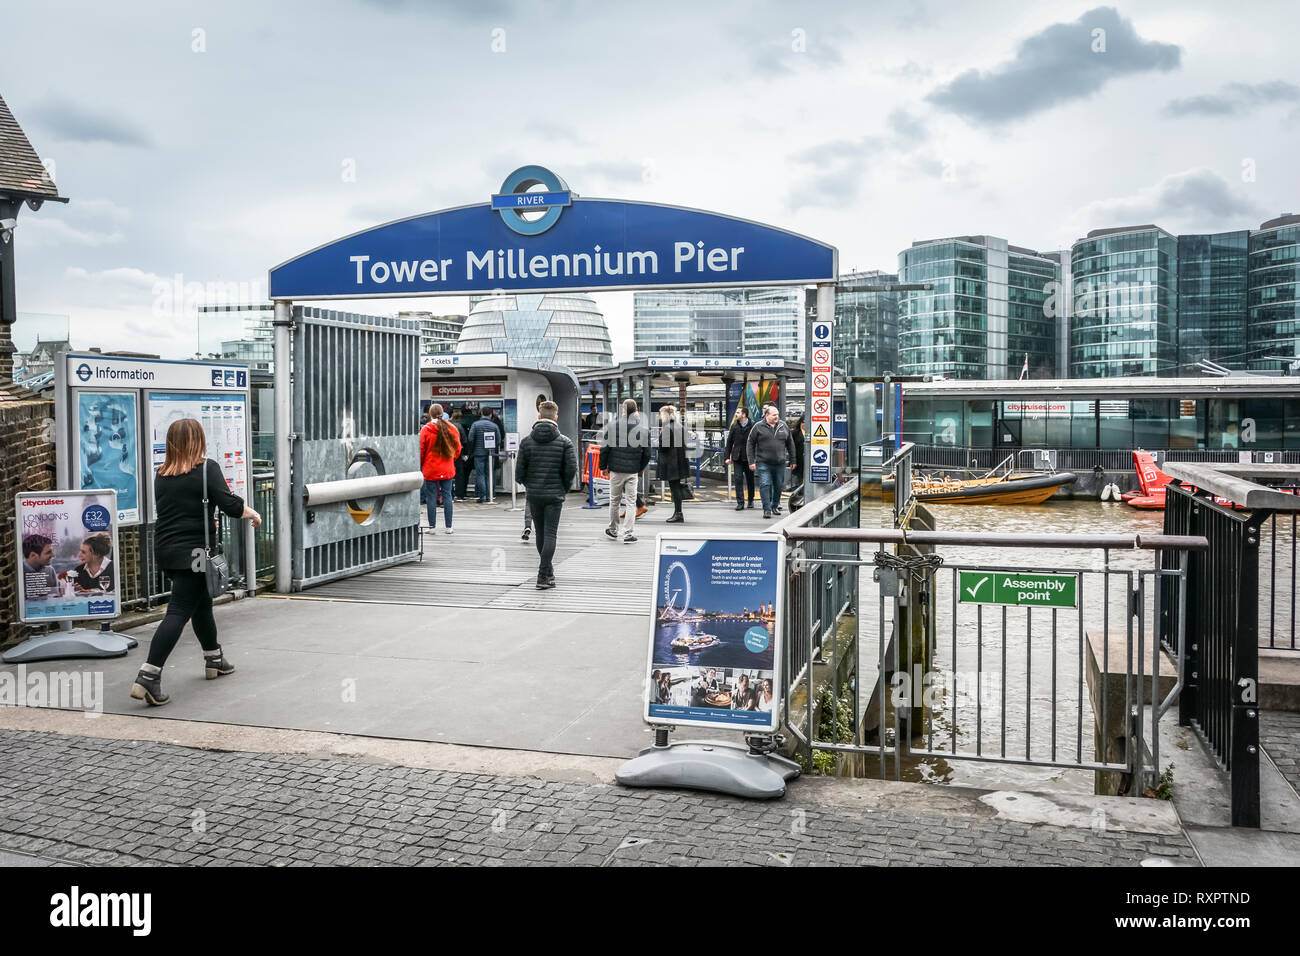 Tower Millennium Pier embarkation point, City of London, UK - Stock Image